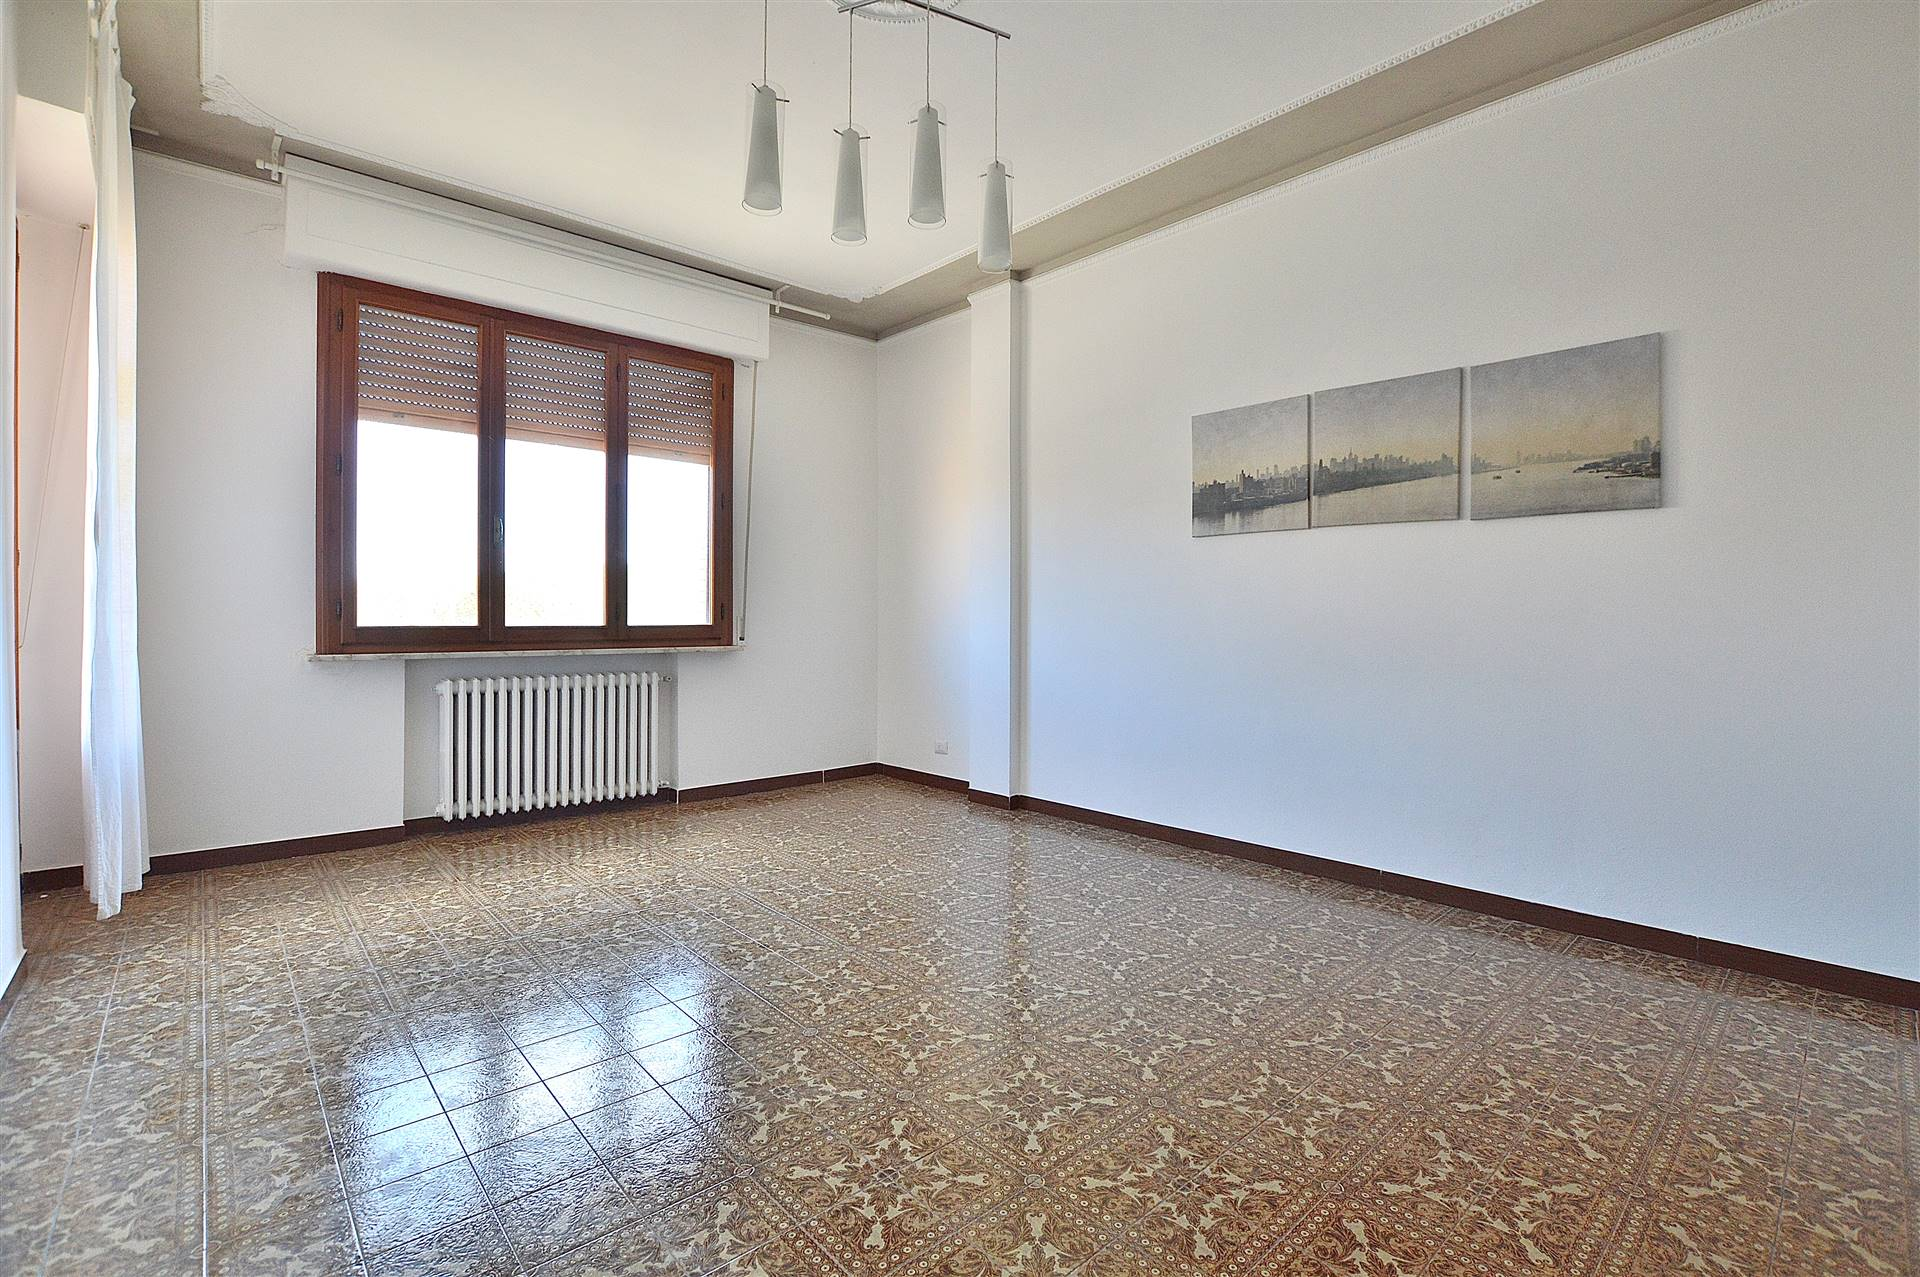 PONTE A TRESSA, MONTERONI D'ARBIA, Apartment for sale of 96 Sq. mt., Habitable, Heating Individual heating system, Energetic class: G, Epi: 175 kwh/m2 year, placed at 1° on 1, composed by: 4 Rooms,